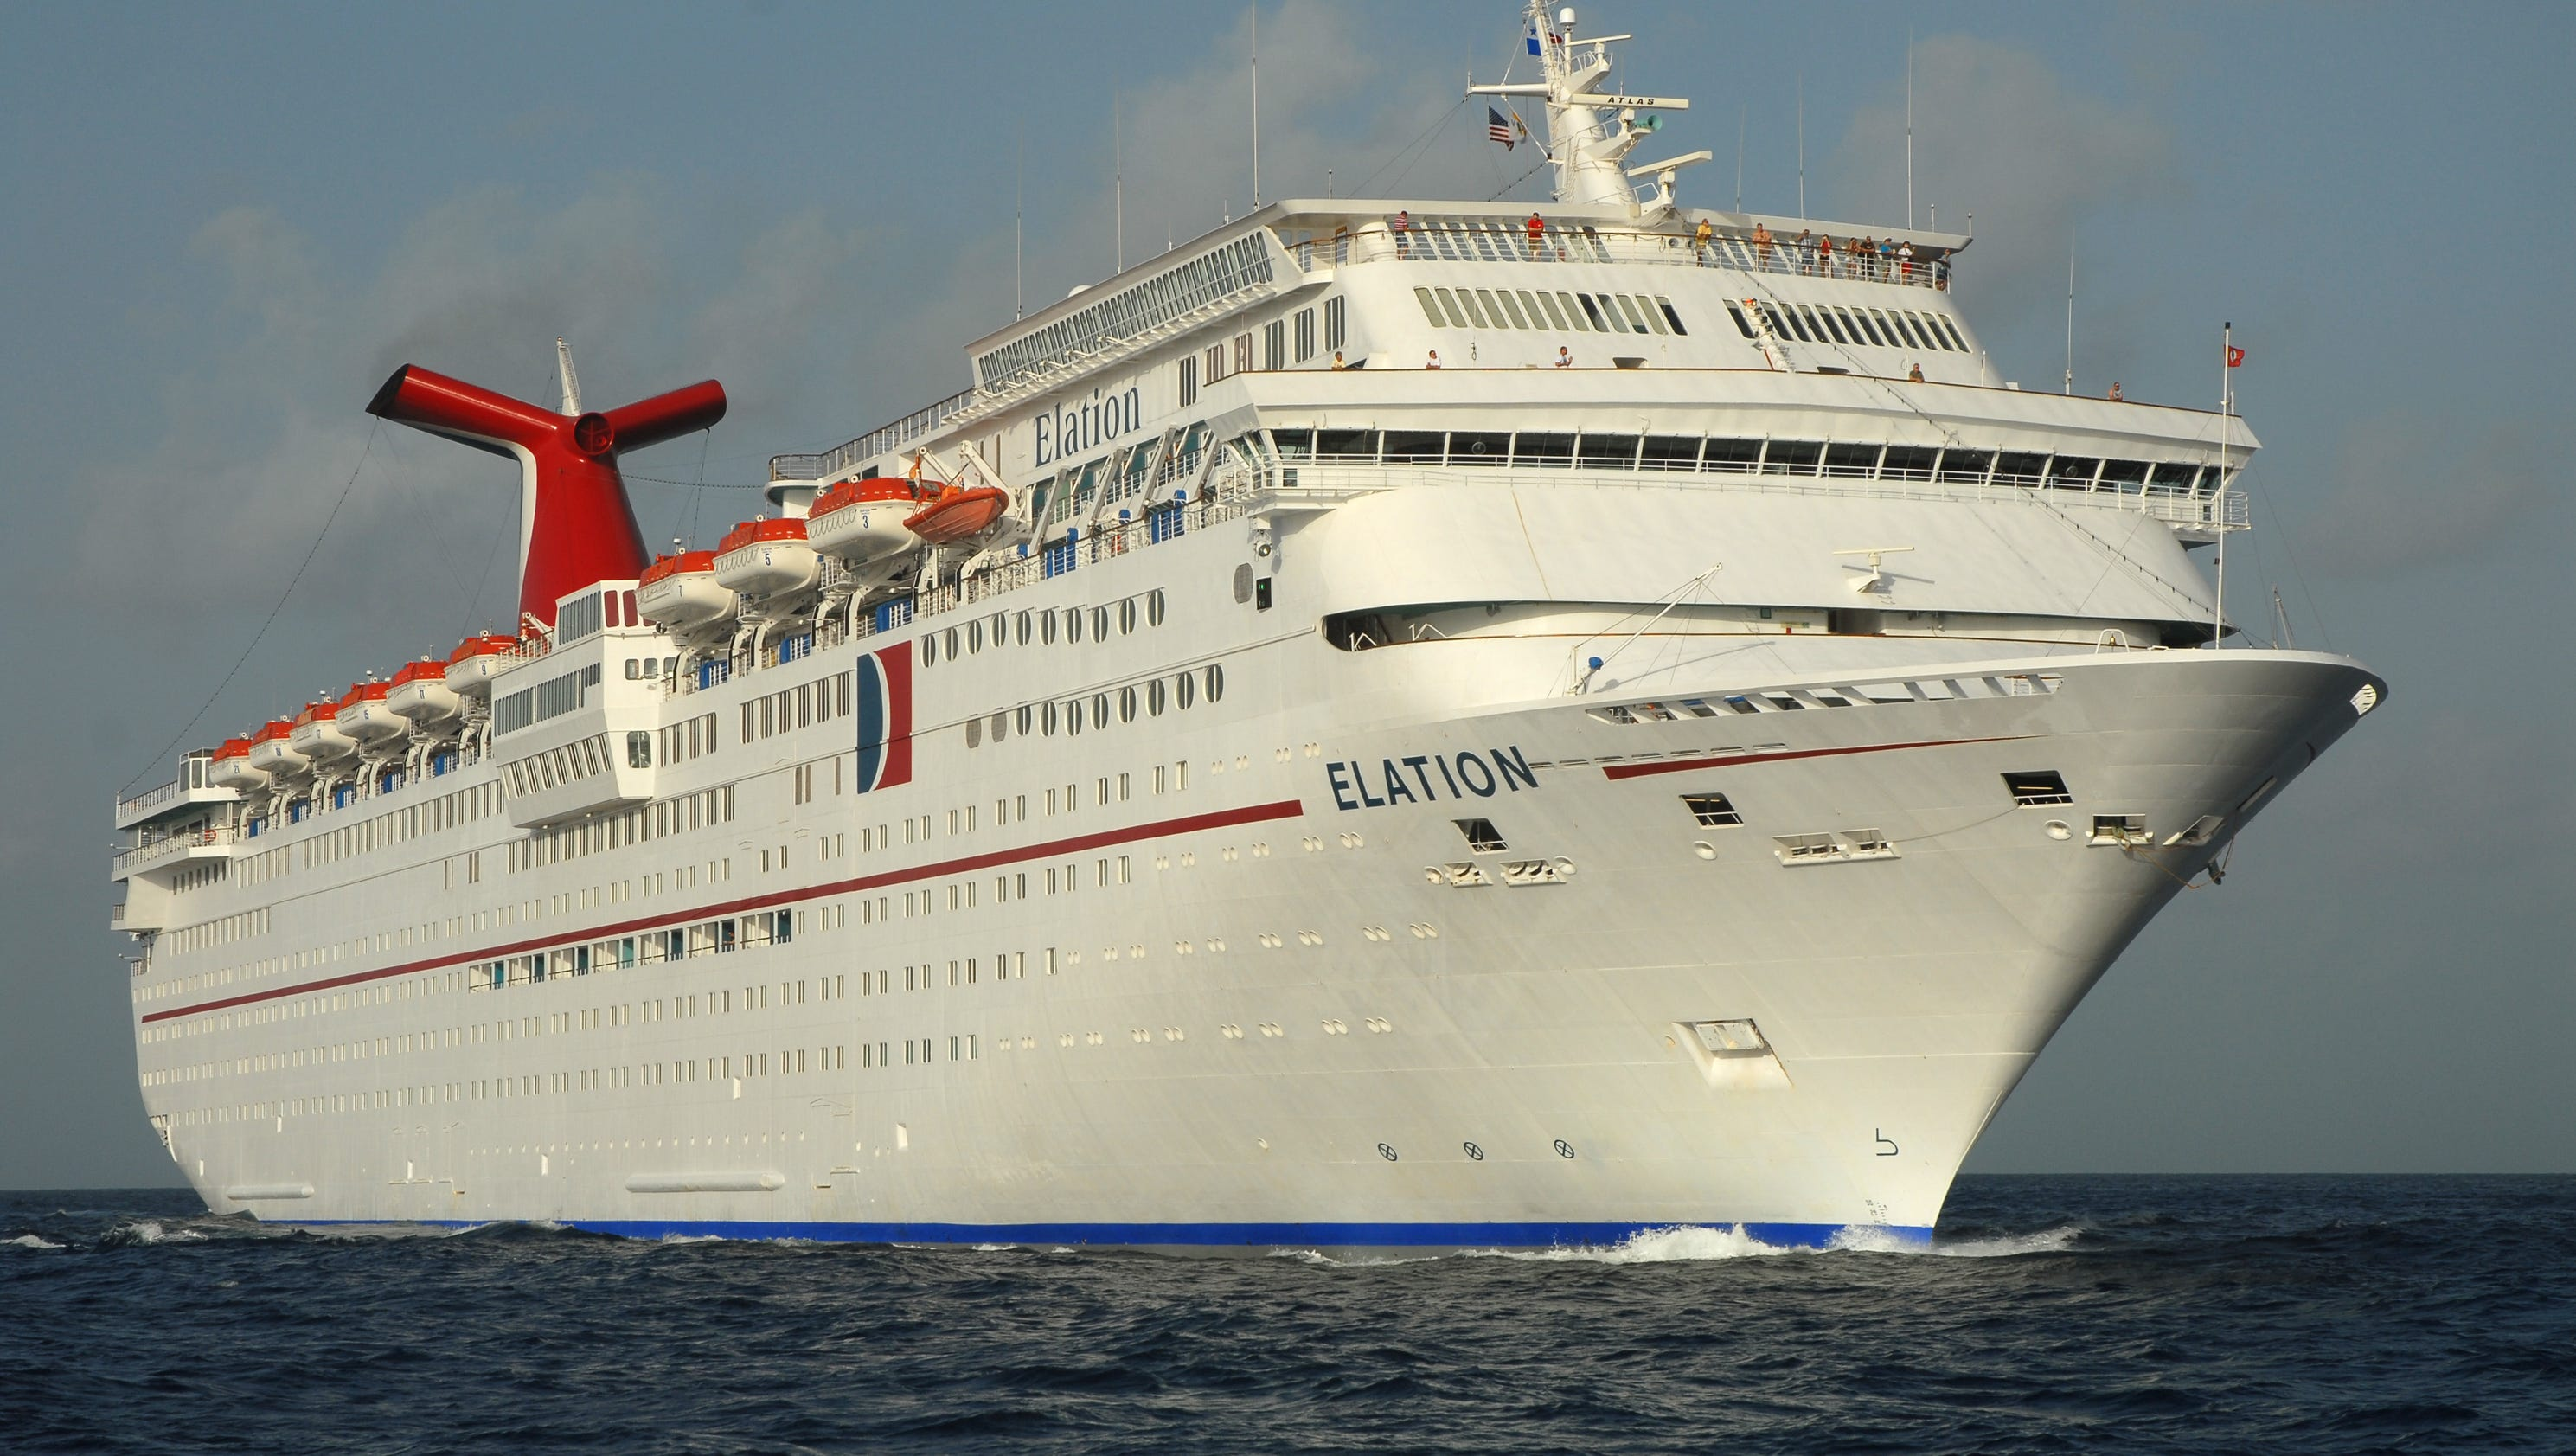 Carnival Elation Is The Latest Carnival Ship To Undergo Major Makeover